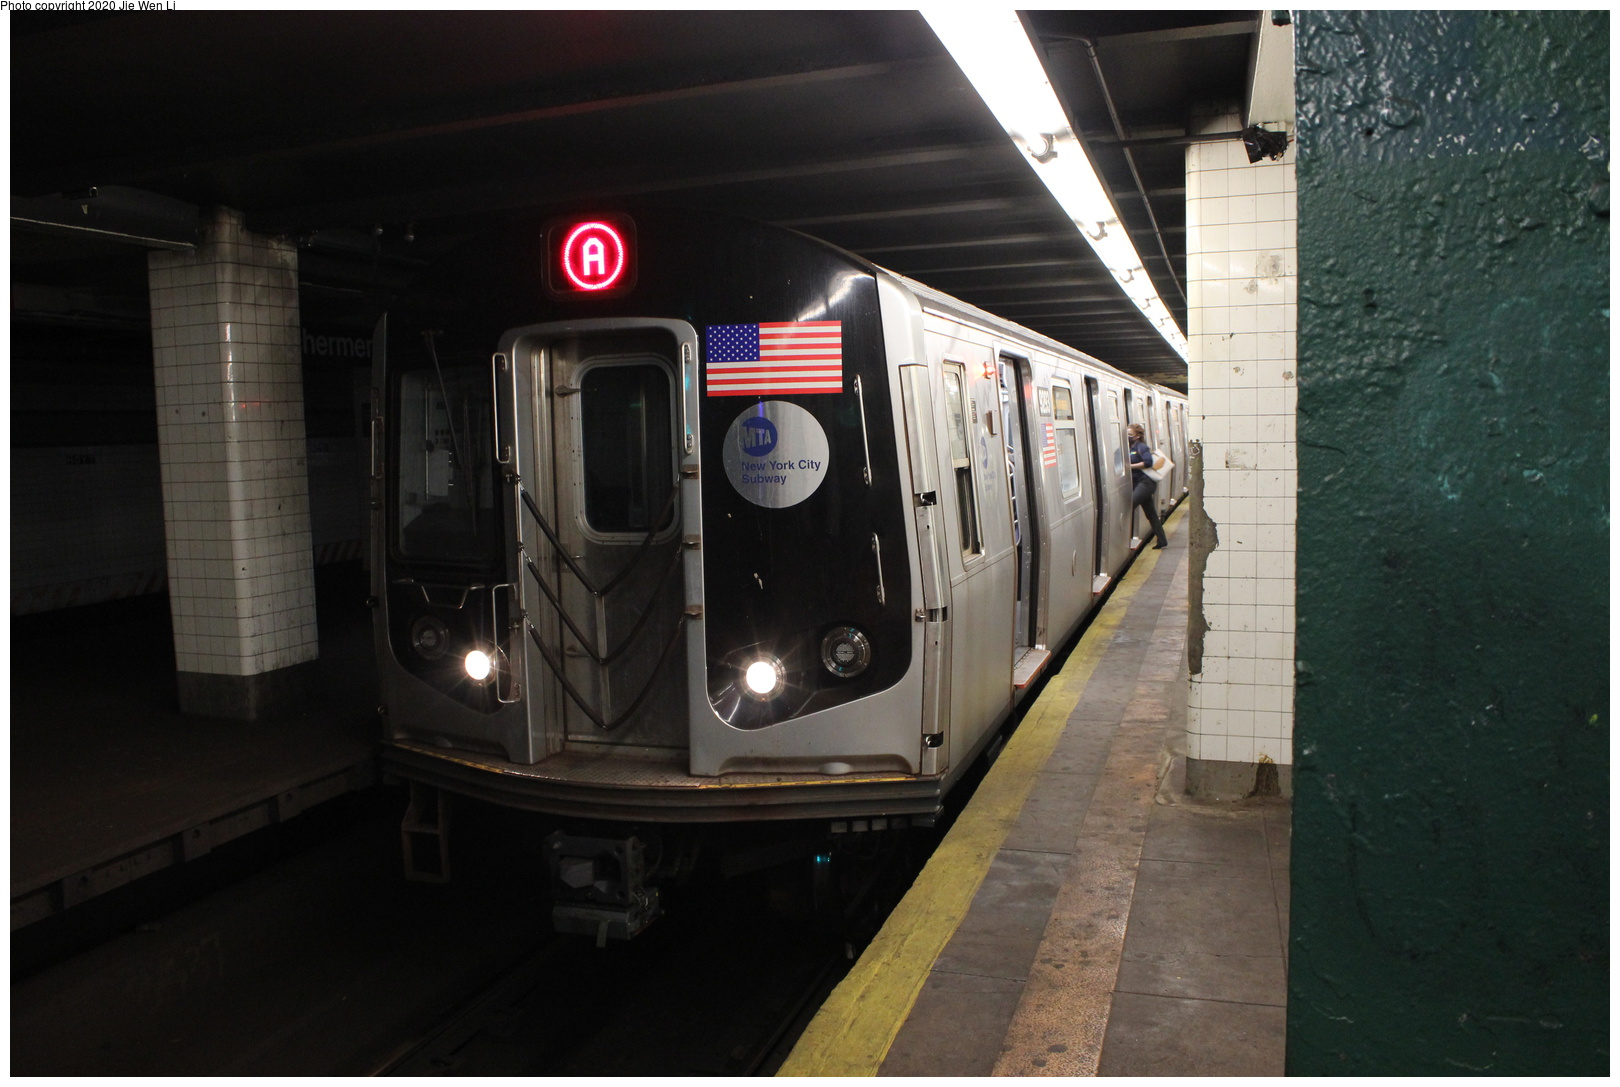 (323k, 1044x1036)<br><b>Country:</b> United States<br><b>City:</b> New York<br><b>System:</b> New York City Transit<br><b>Line:</b> BMT Fulton<br><b>Location:</b> Broadway Junction <br><b>Route:</b> Work Service<br><b>Car:</b> BMT C  <br><b>Photo by:</b> Joel Shanus<br><b>Notes:</b> Fulton El at Broadway Junction, view from southbound Canarsie Line platform toward Rockaway Ave. El service cut back to Rockaway Ave 7/1/1940; based on automobiles in photo, probably taken in early 1956 just prior to April 1956 abandonment.<br><b>Viewed (this week/total):</b> 0 / 2983